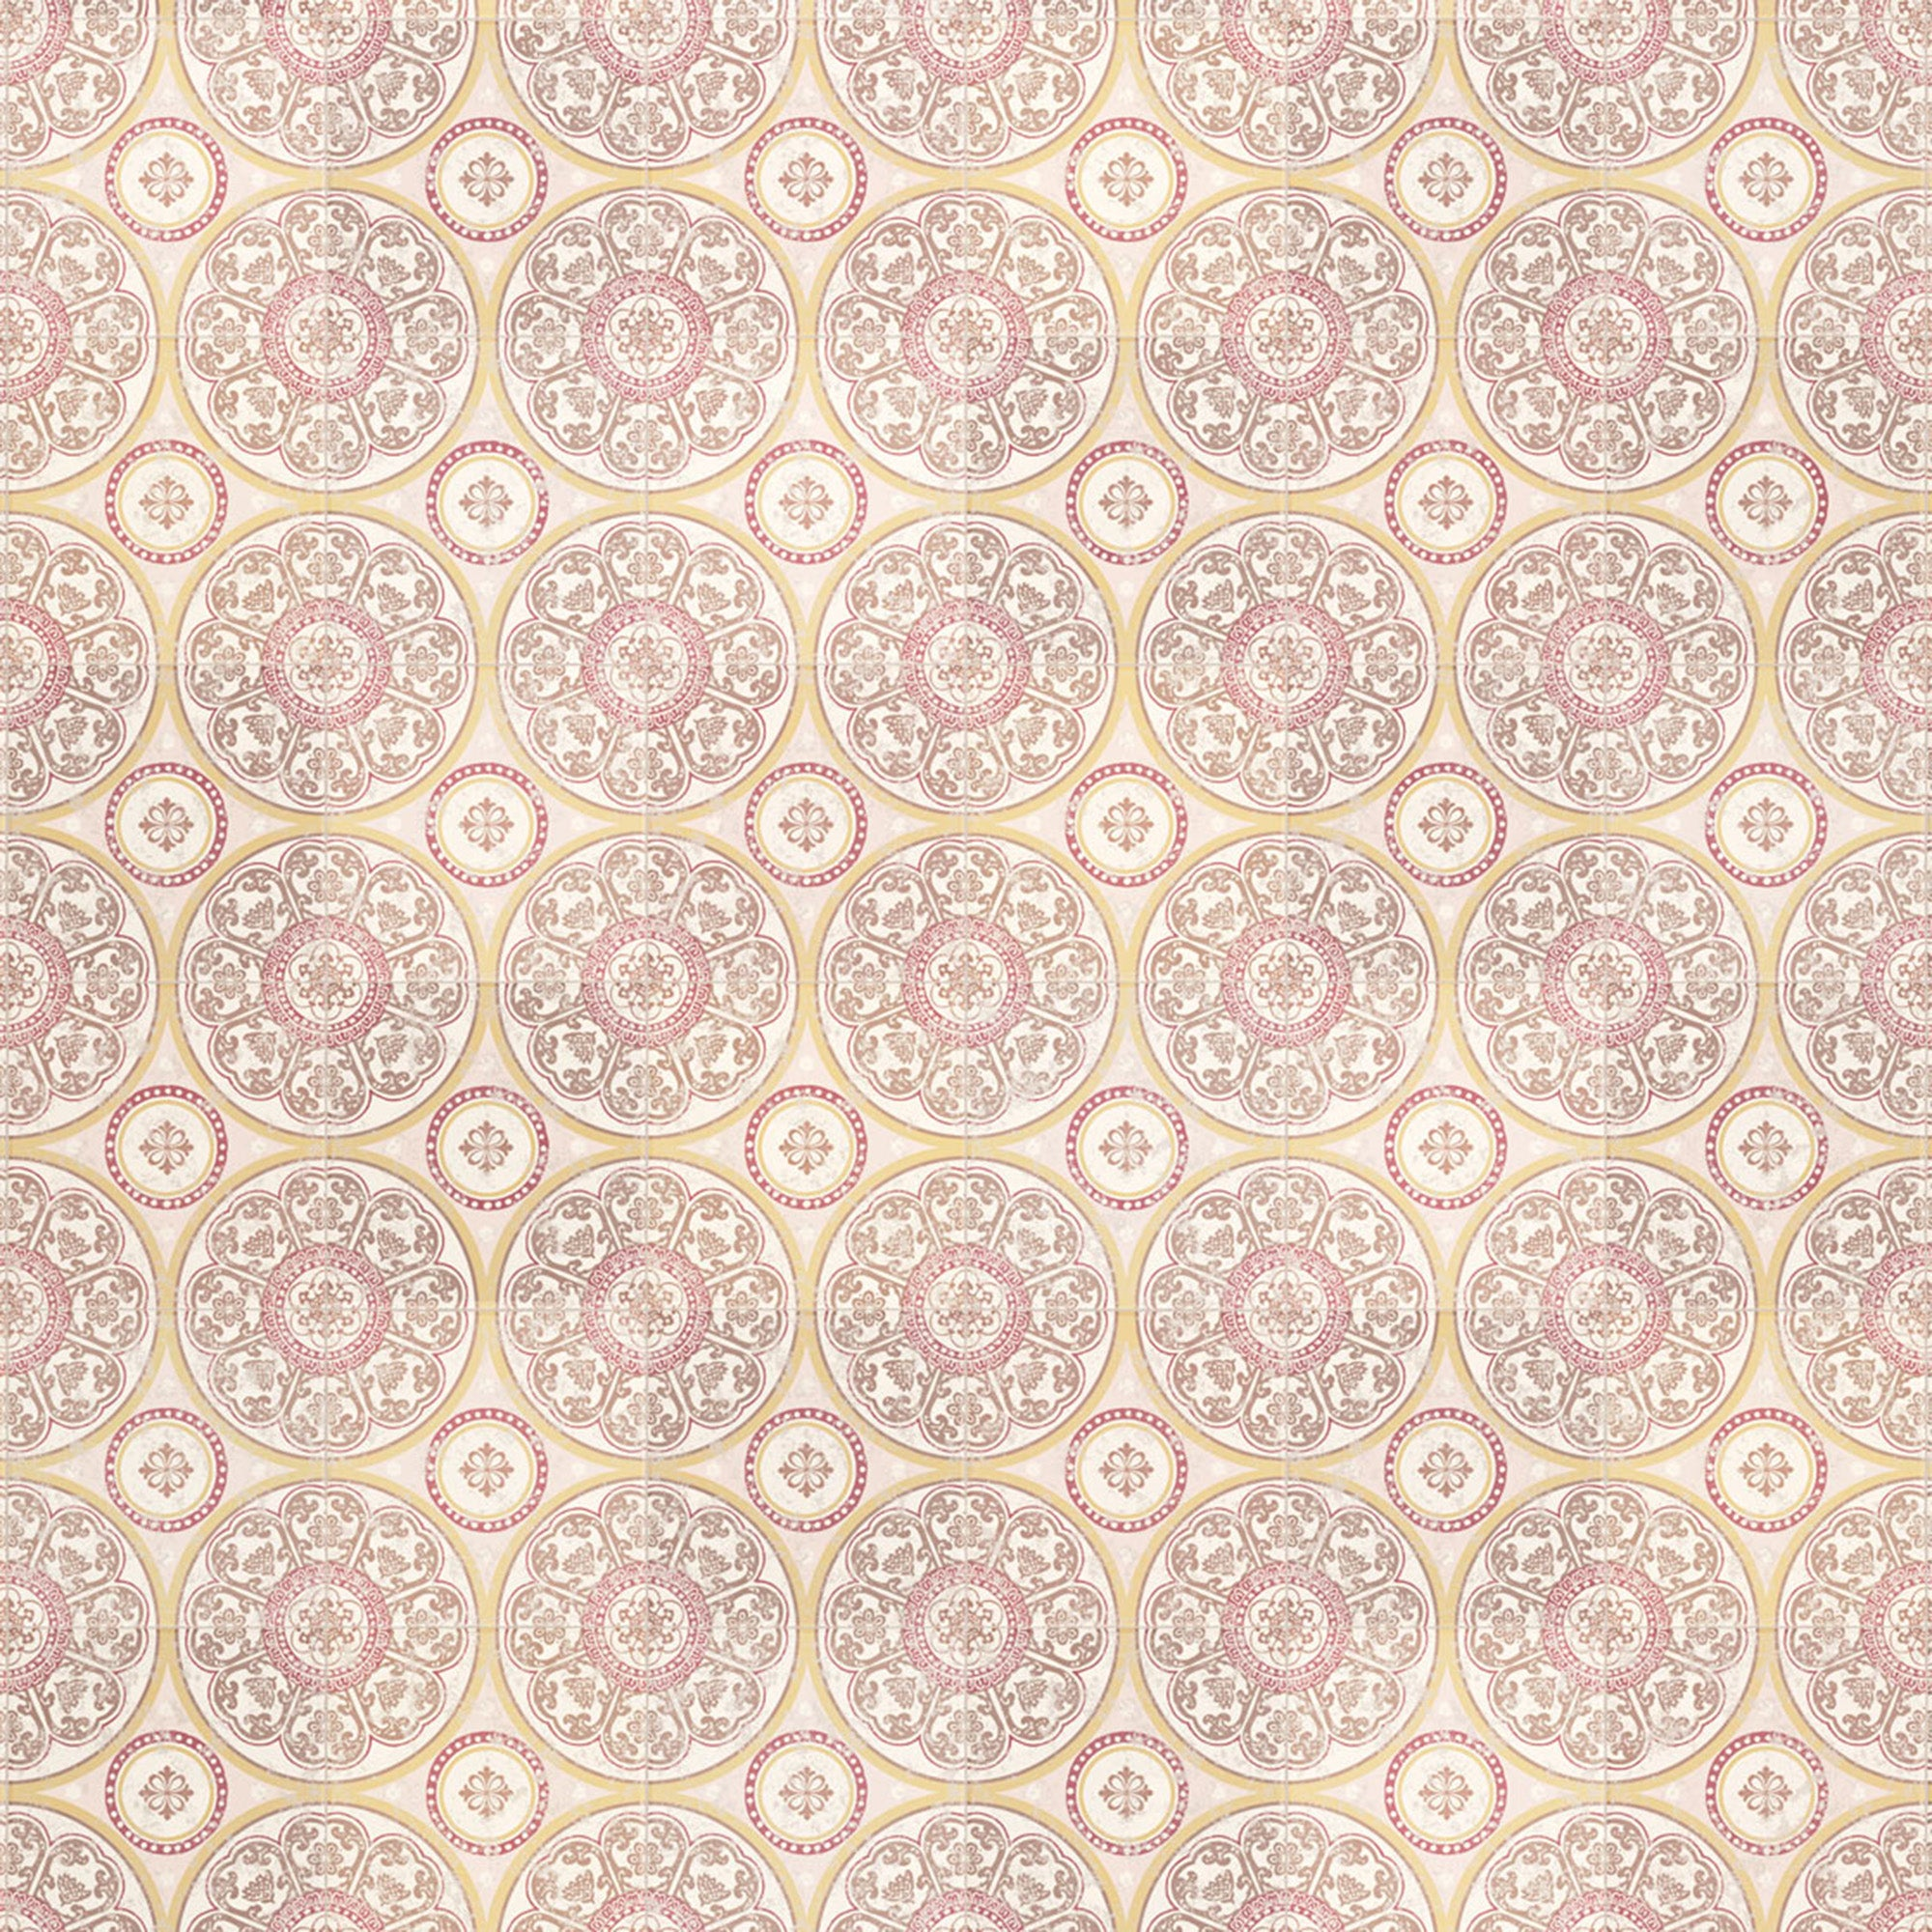 Large Pink Rosettes And Circle Tiles In Pink And Yellow On Beige. 52117 42